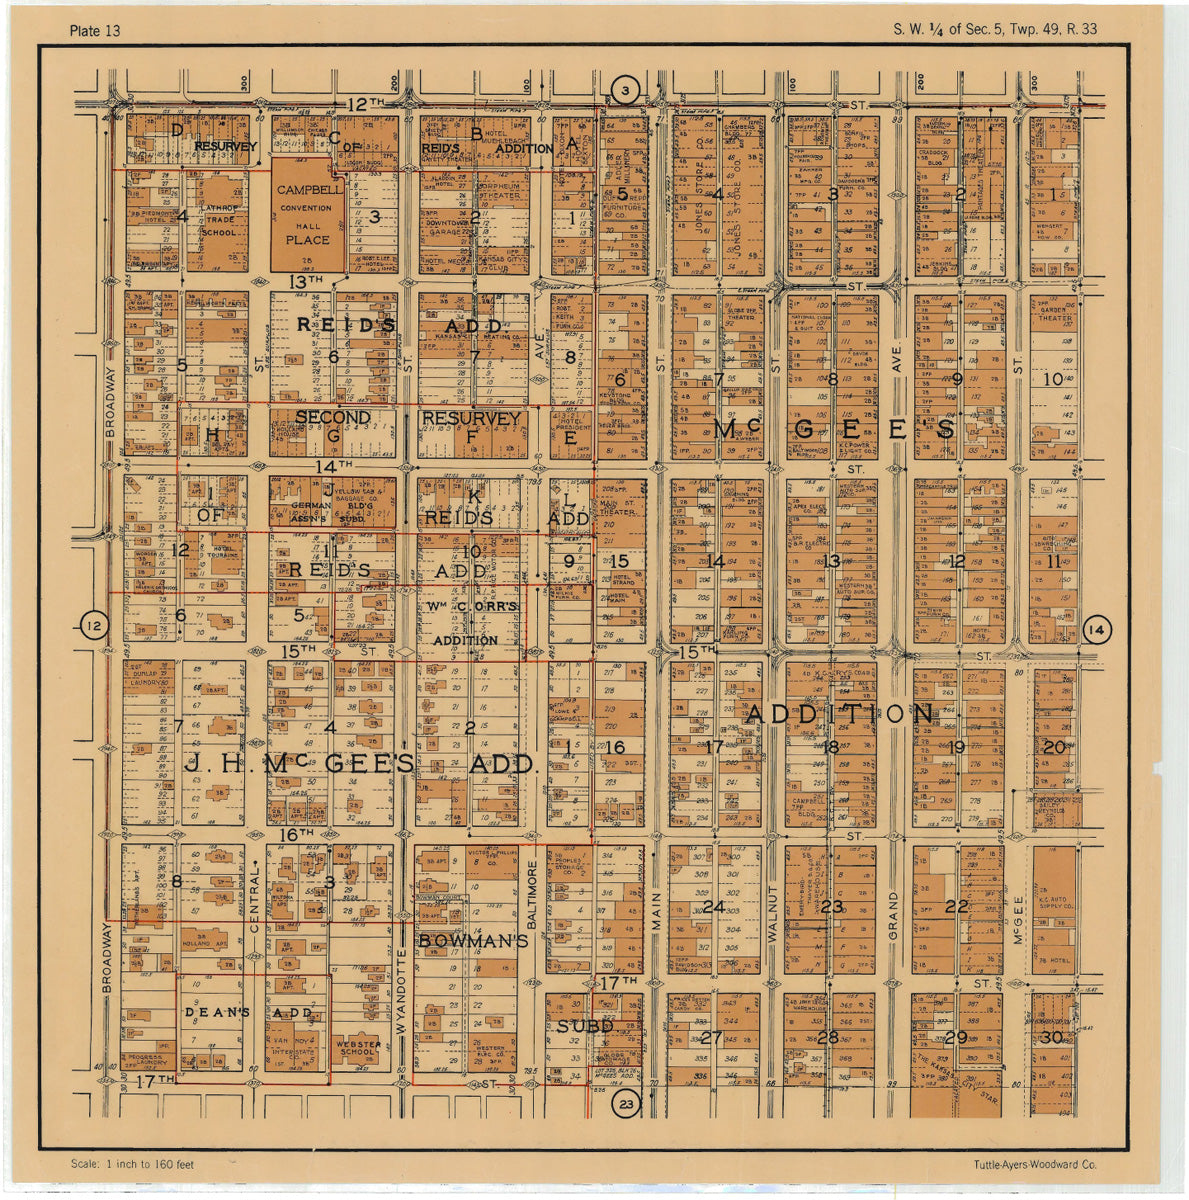 Kansas City 1925 Neighborhood Map - Plate #13 12th-17th Broadway-McGEE